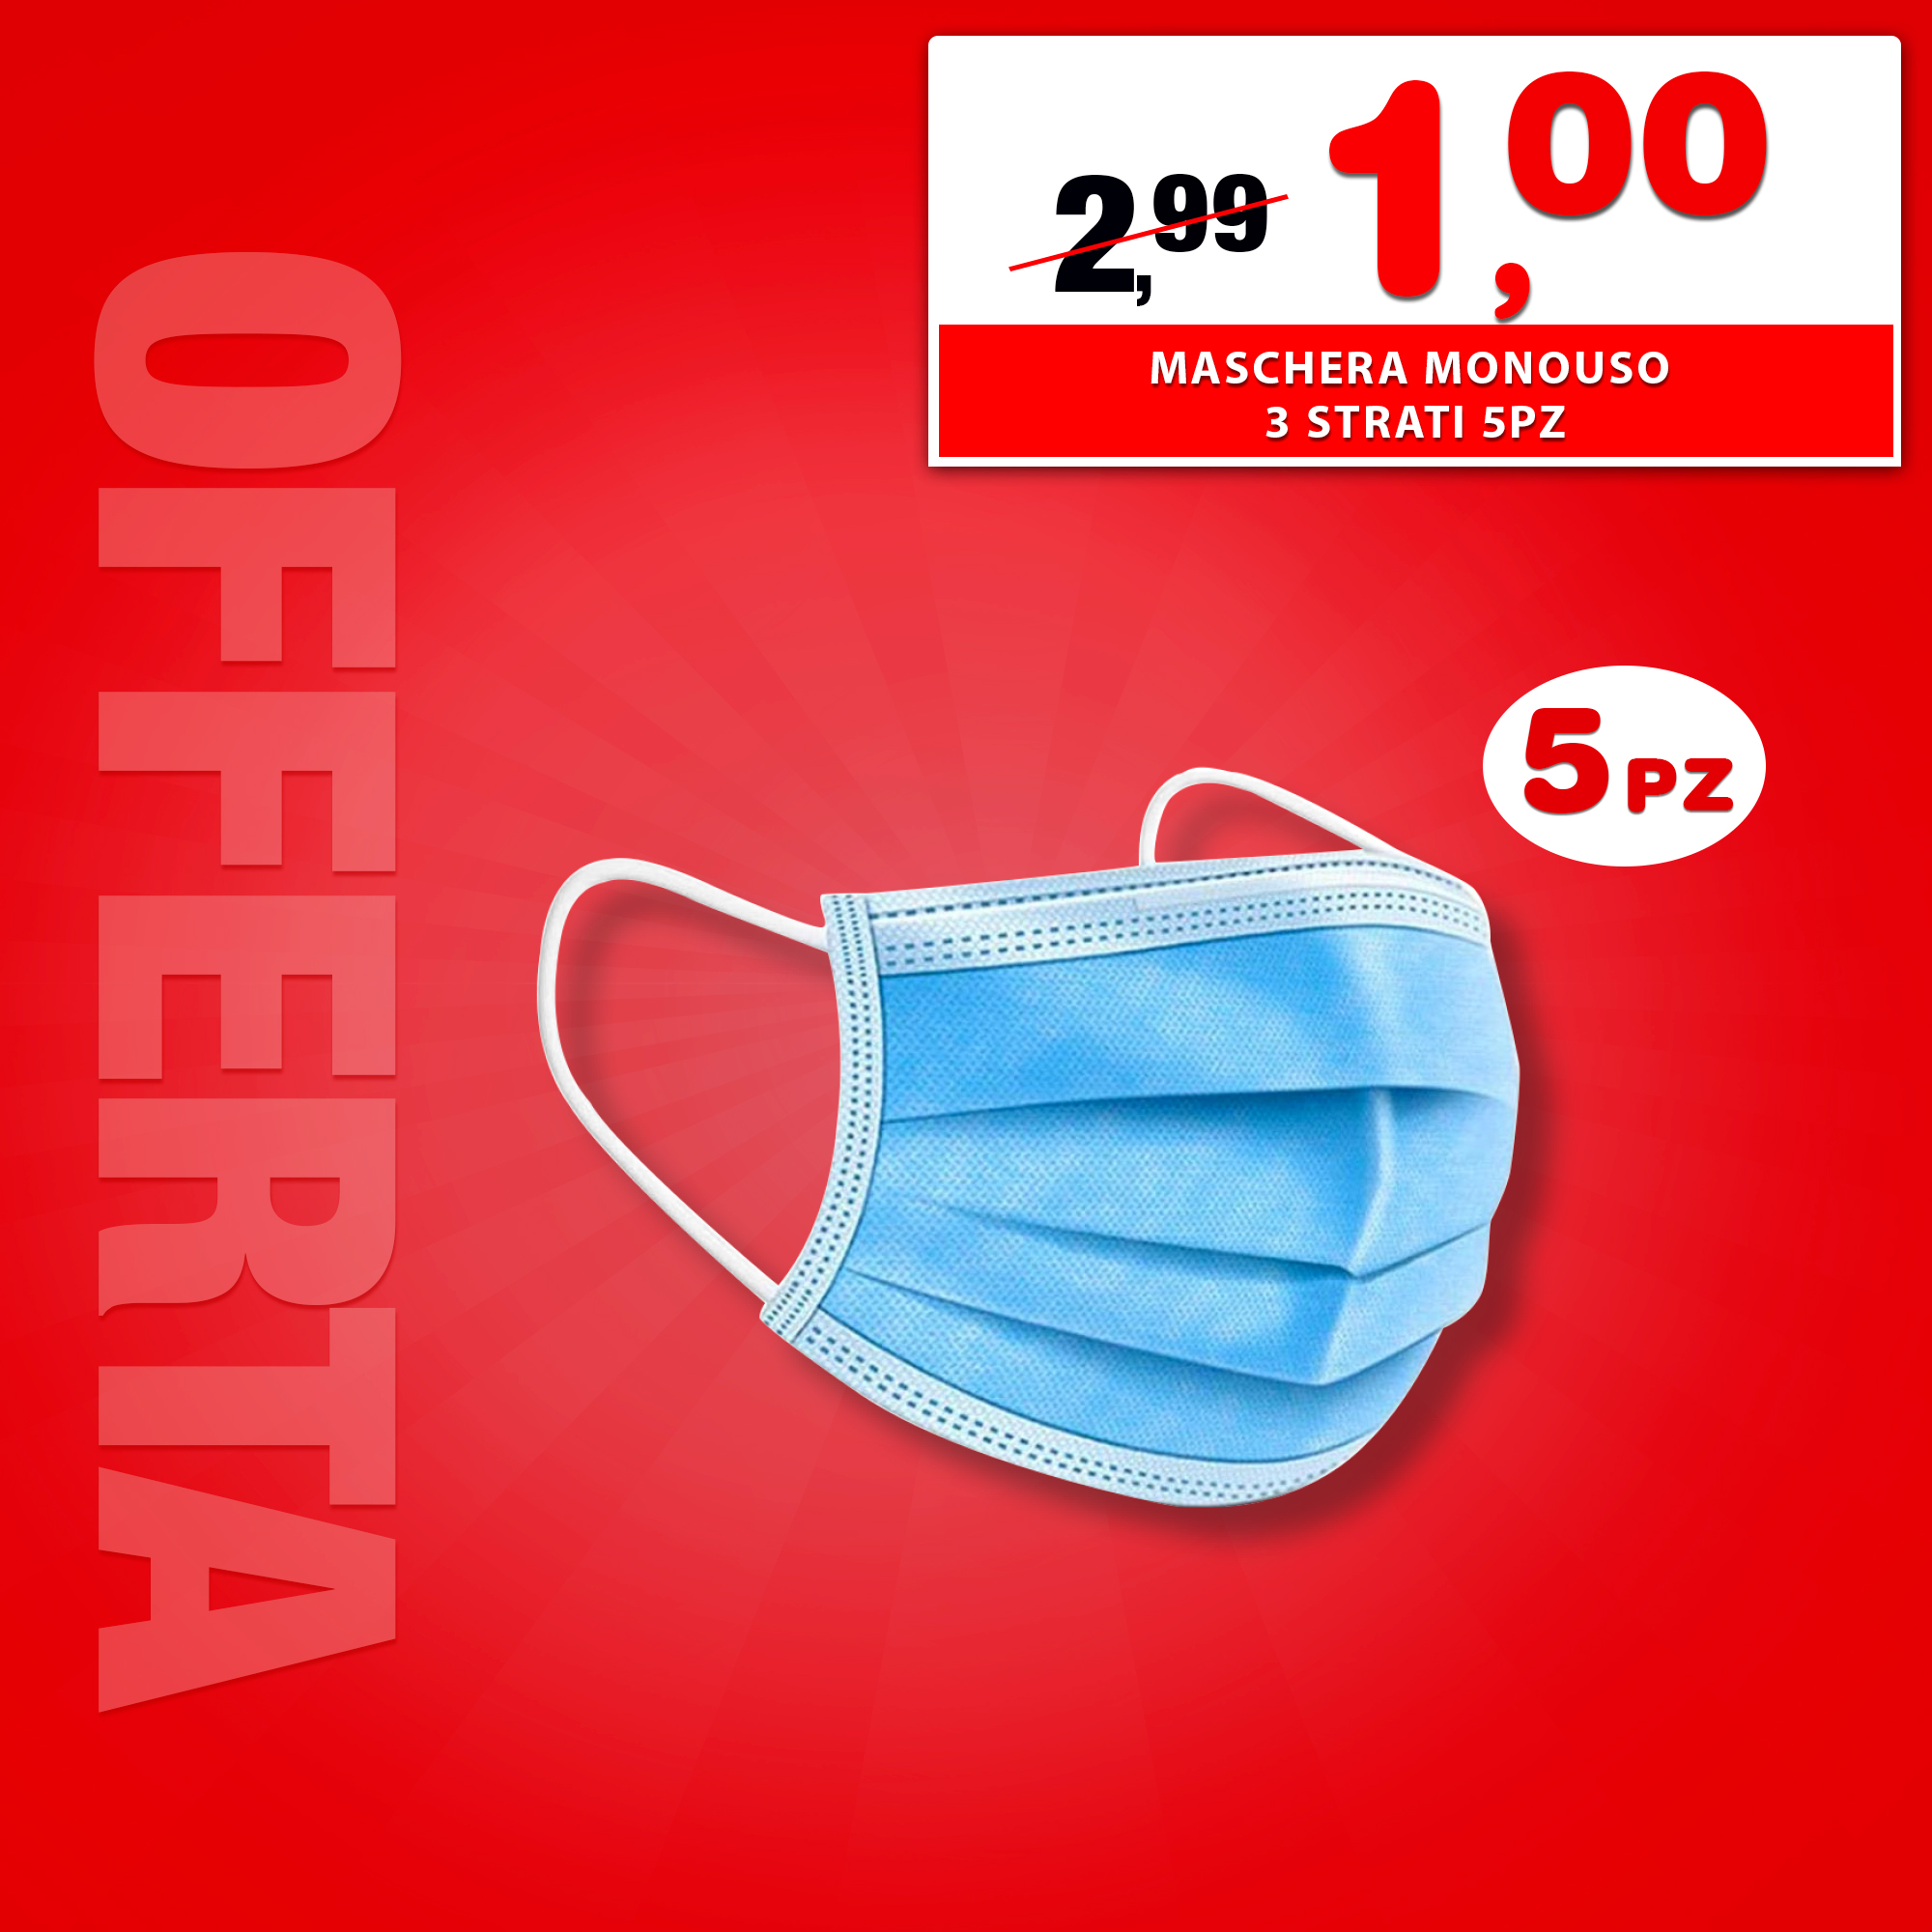 Offerta mascherina bricoworld